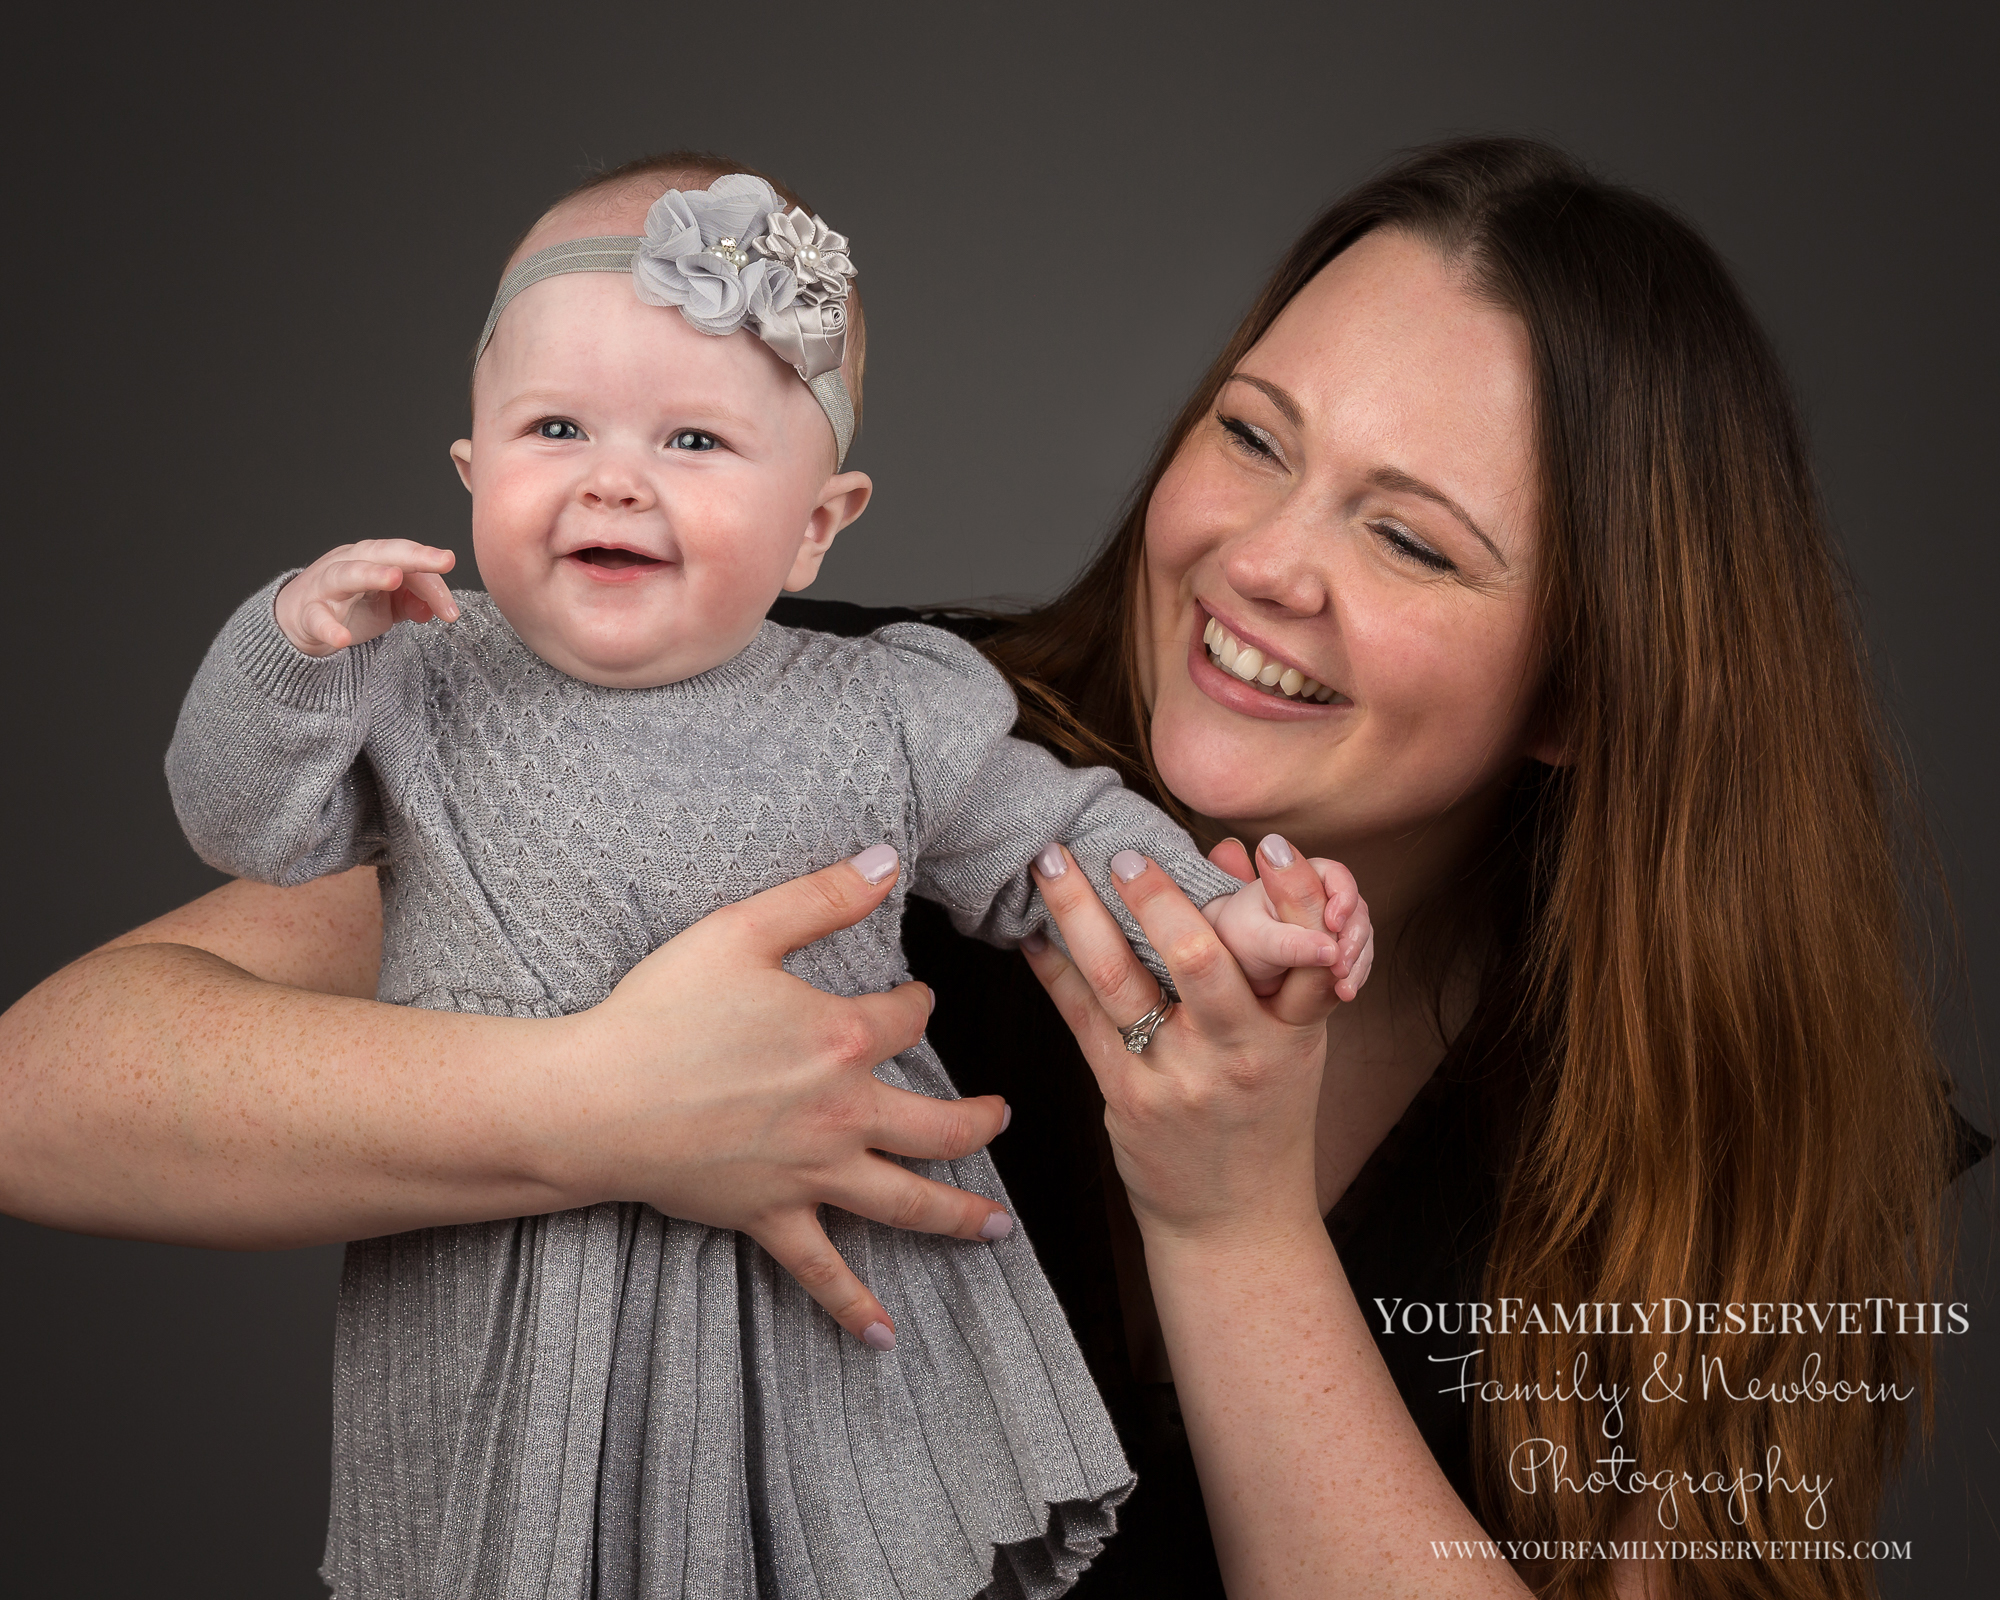 We love capturing moments of fun with you and your little one. So Mum's and Dad's be prepared to be playfully involved!